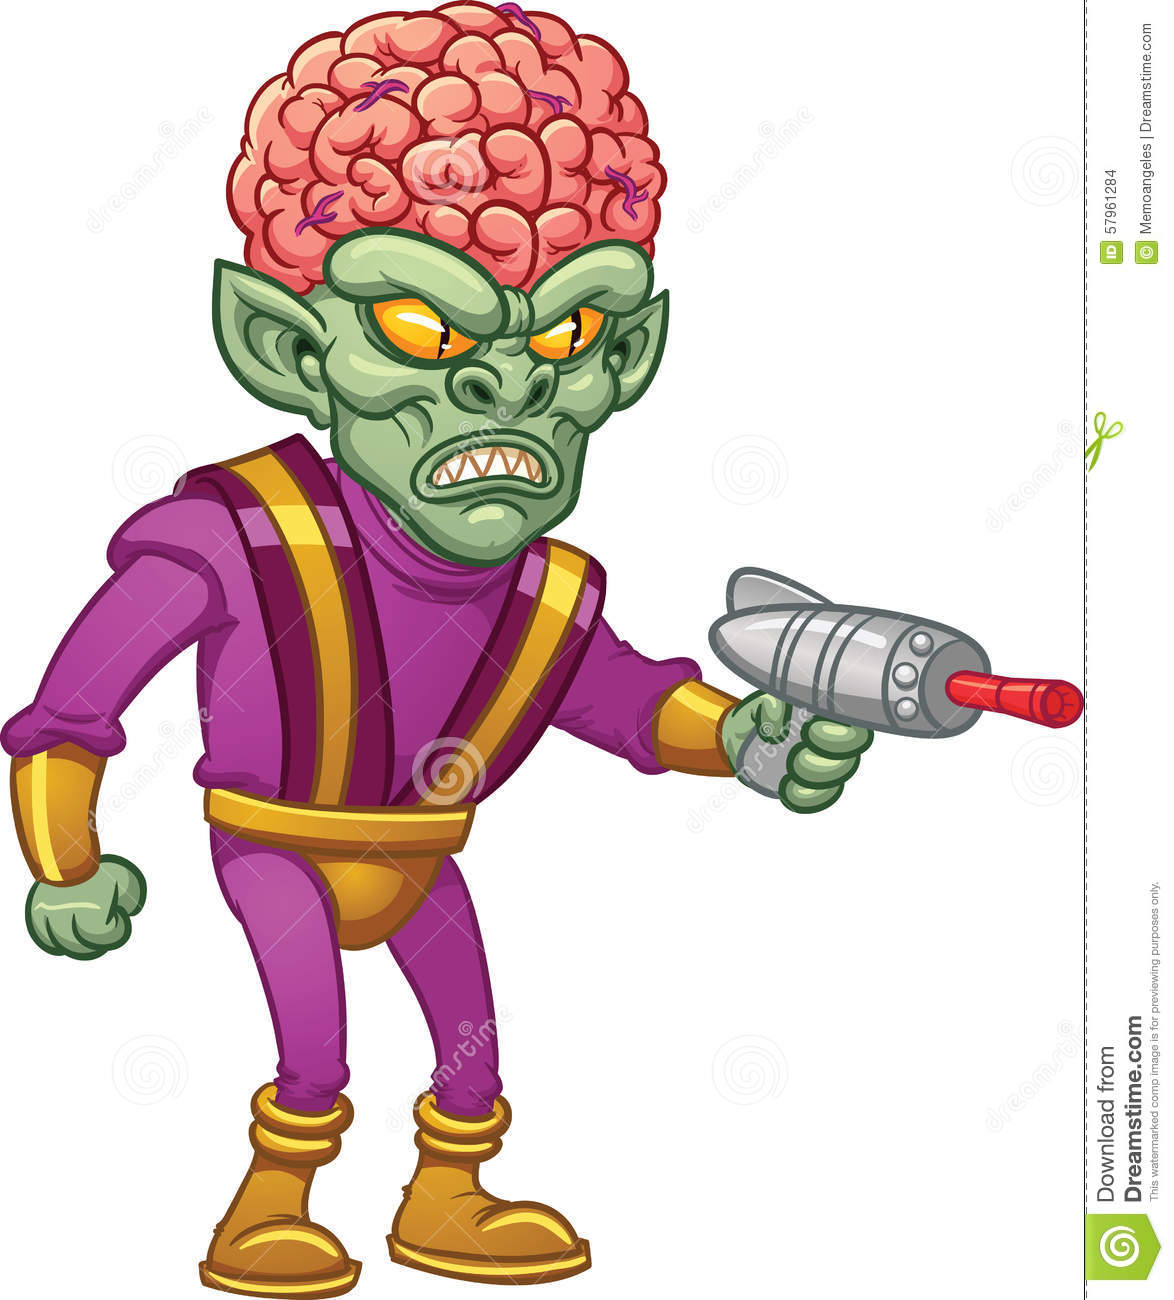 ᐈ Cartoons of aliens stock pictures, Royalty Free aliens images   download  on Depositphotos®